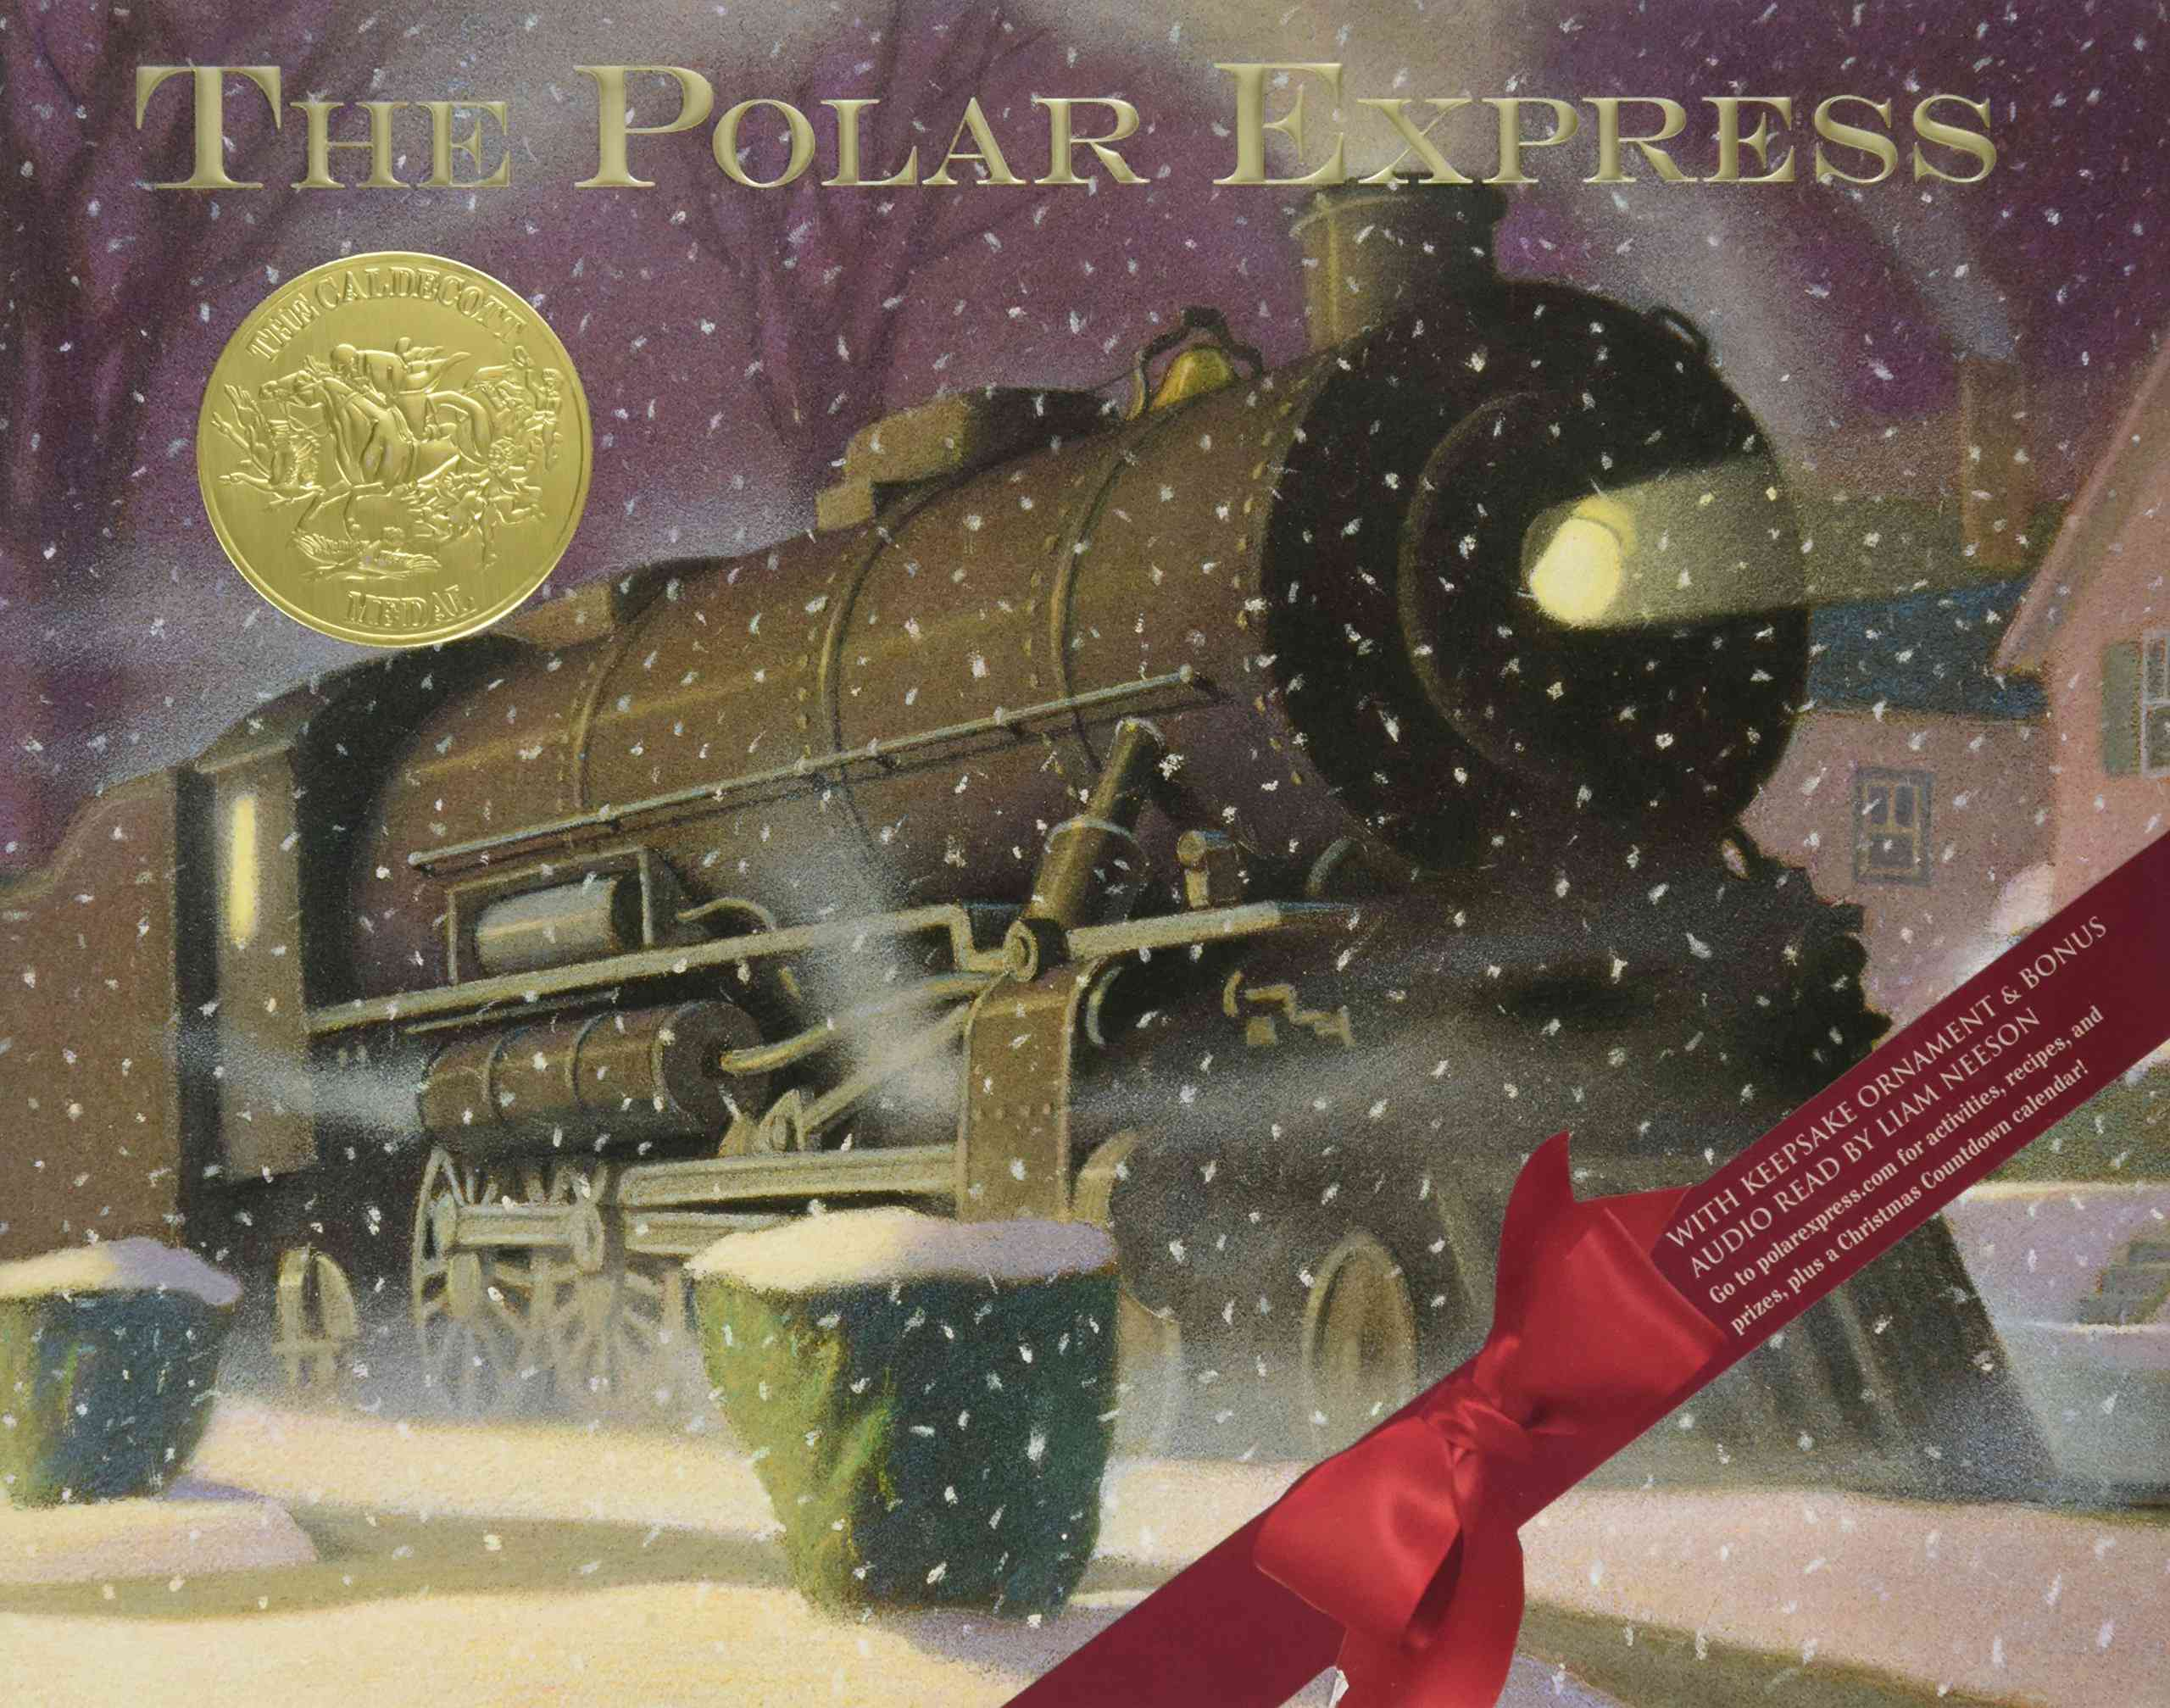 Polar Express: 30th Anniversary Edition